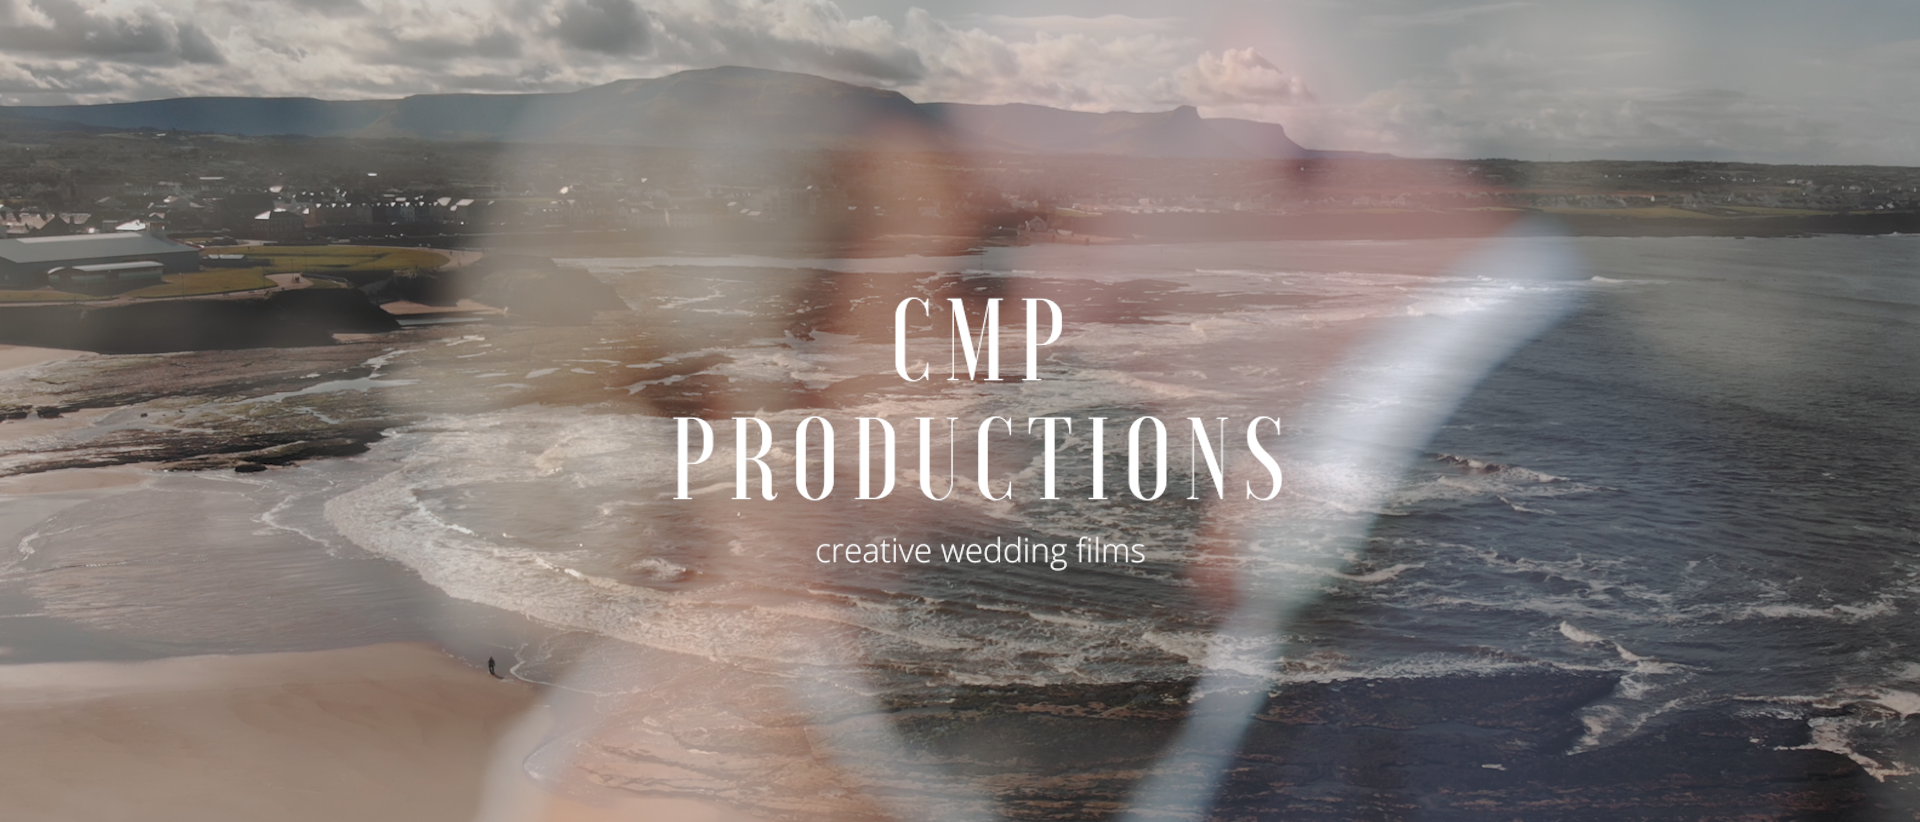 CMP Productions